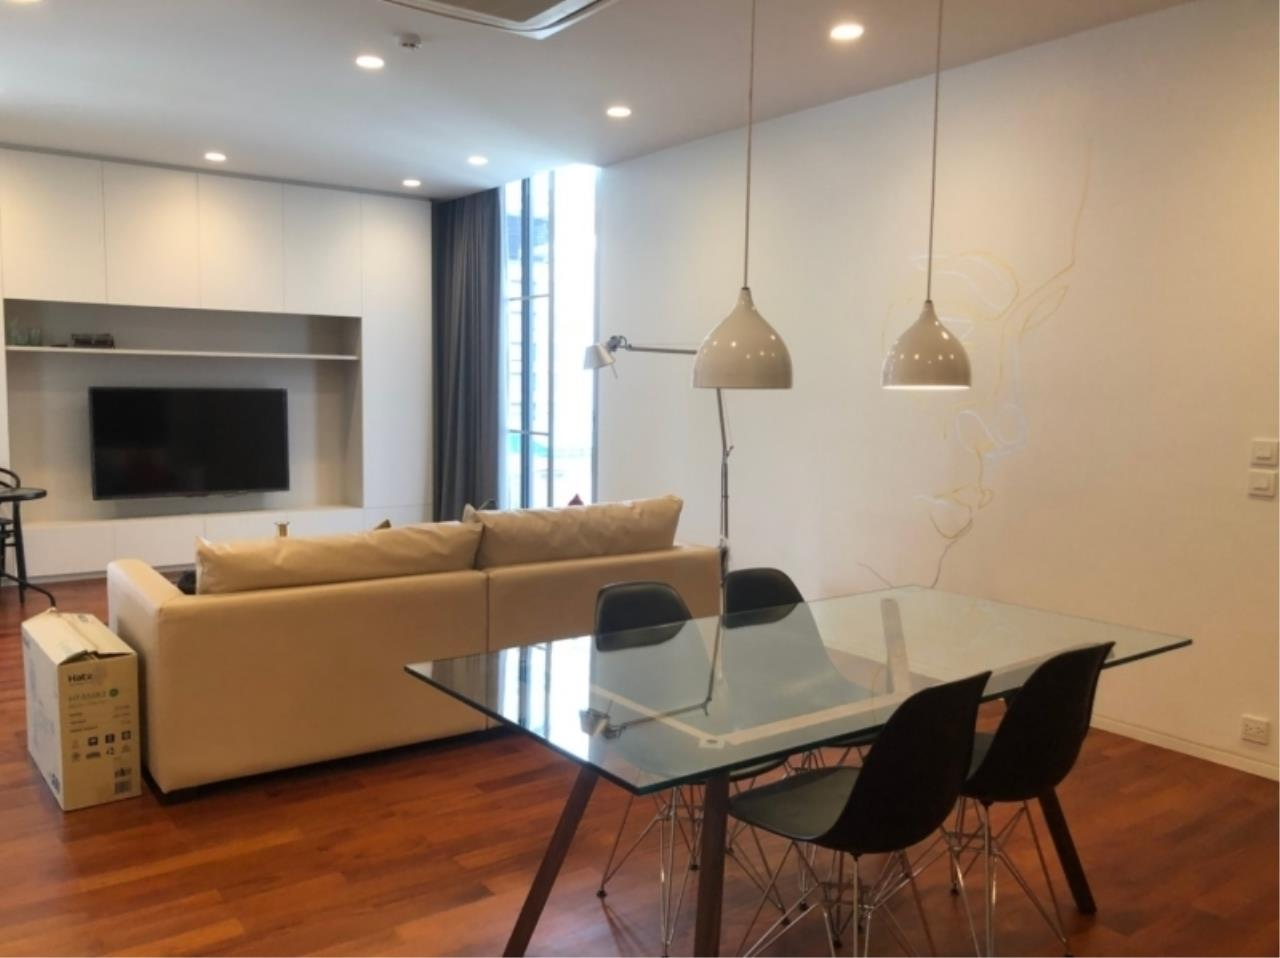 Century21 Skylux Agency's 33 Serviced Apartment / Apartment (Serviced) For Rent / 2 Bedroom / 120 SQM / BTS Asok / Bangkok 6